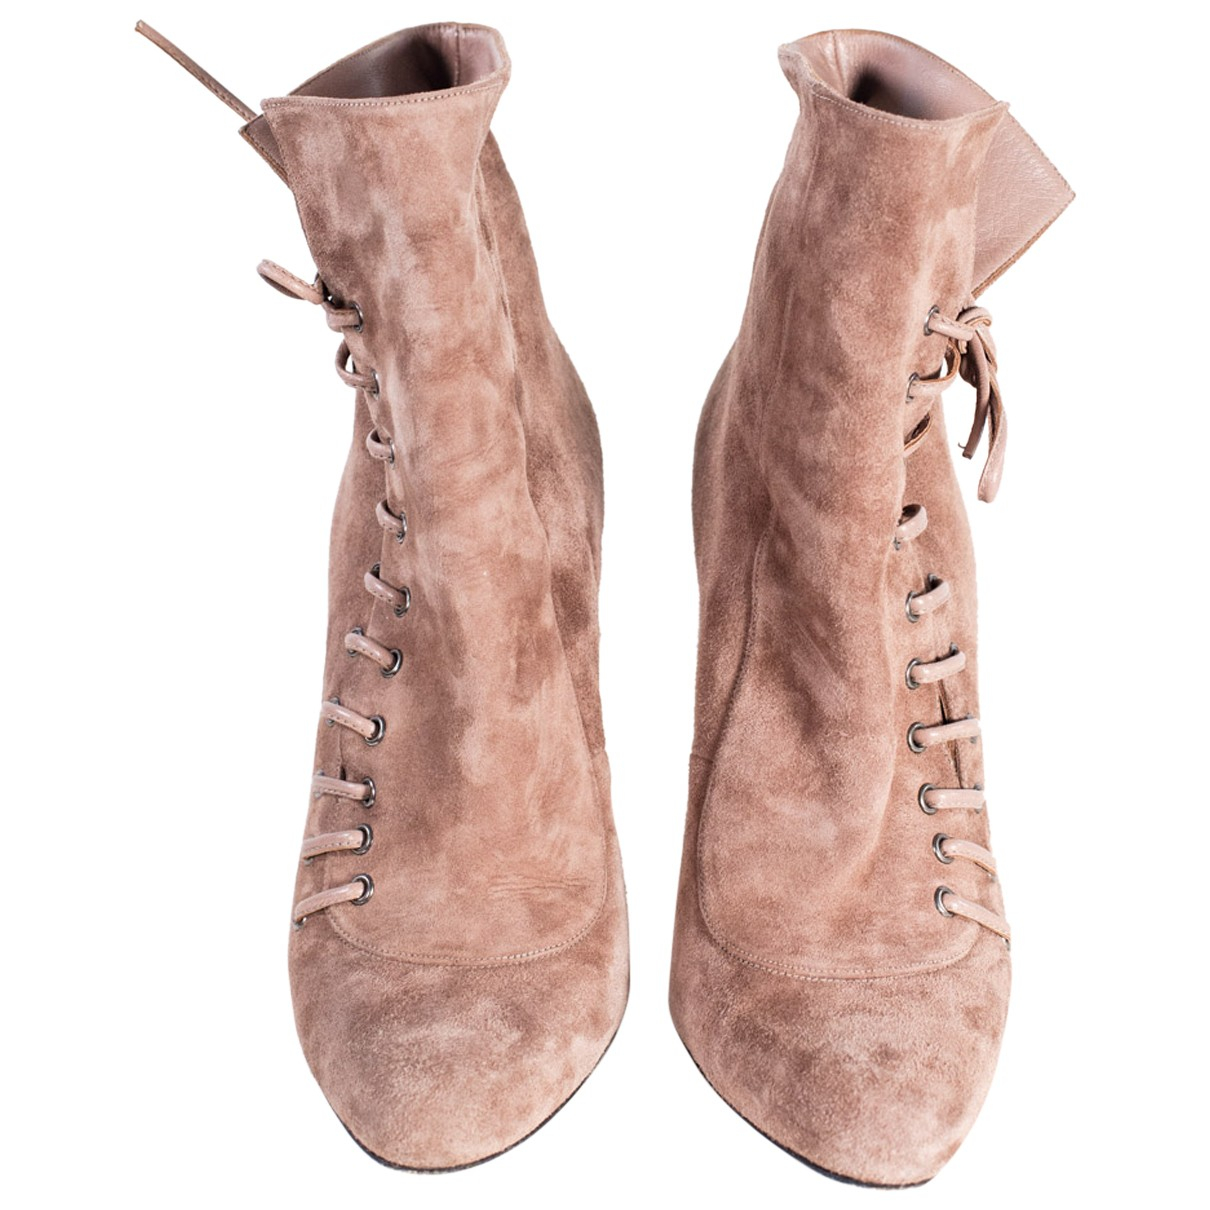 Barbara Bui N Beige Suede Ankle boots for Women 37 EU